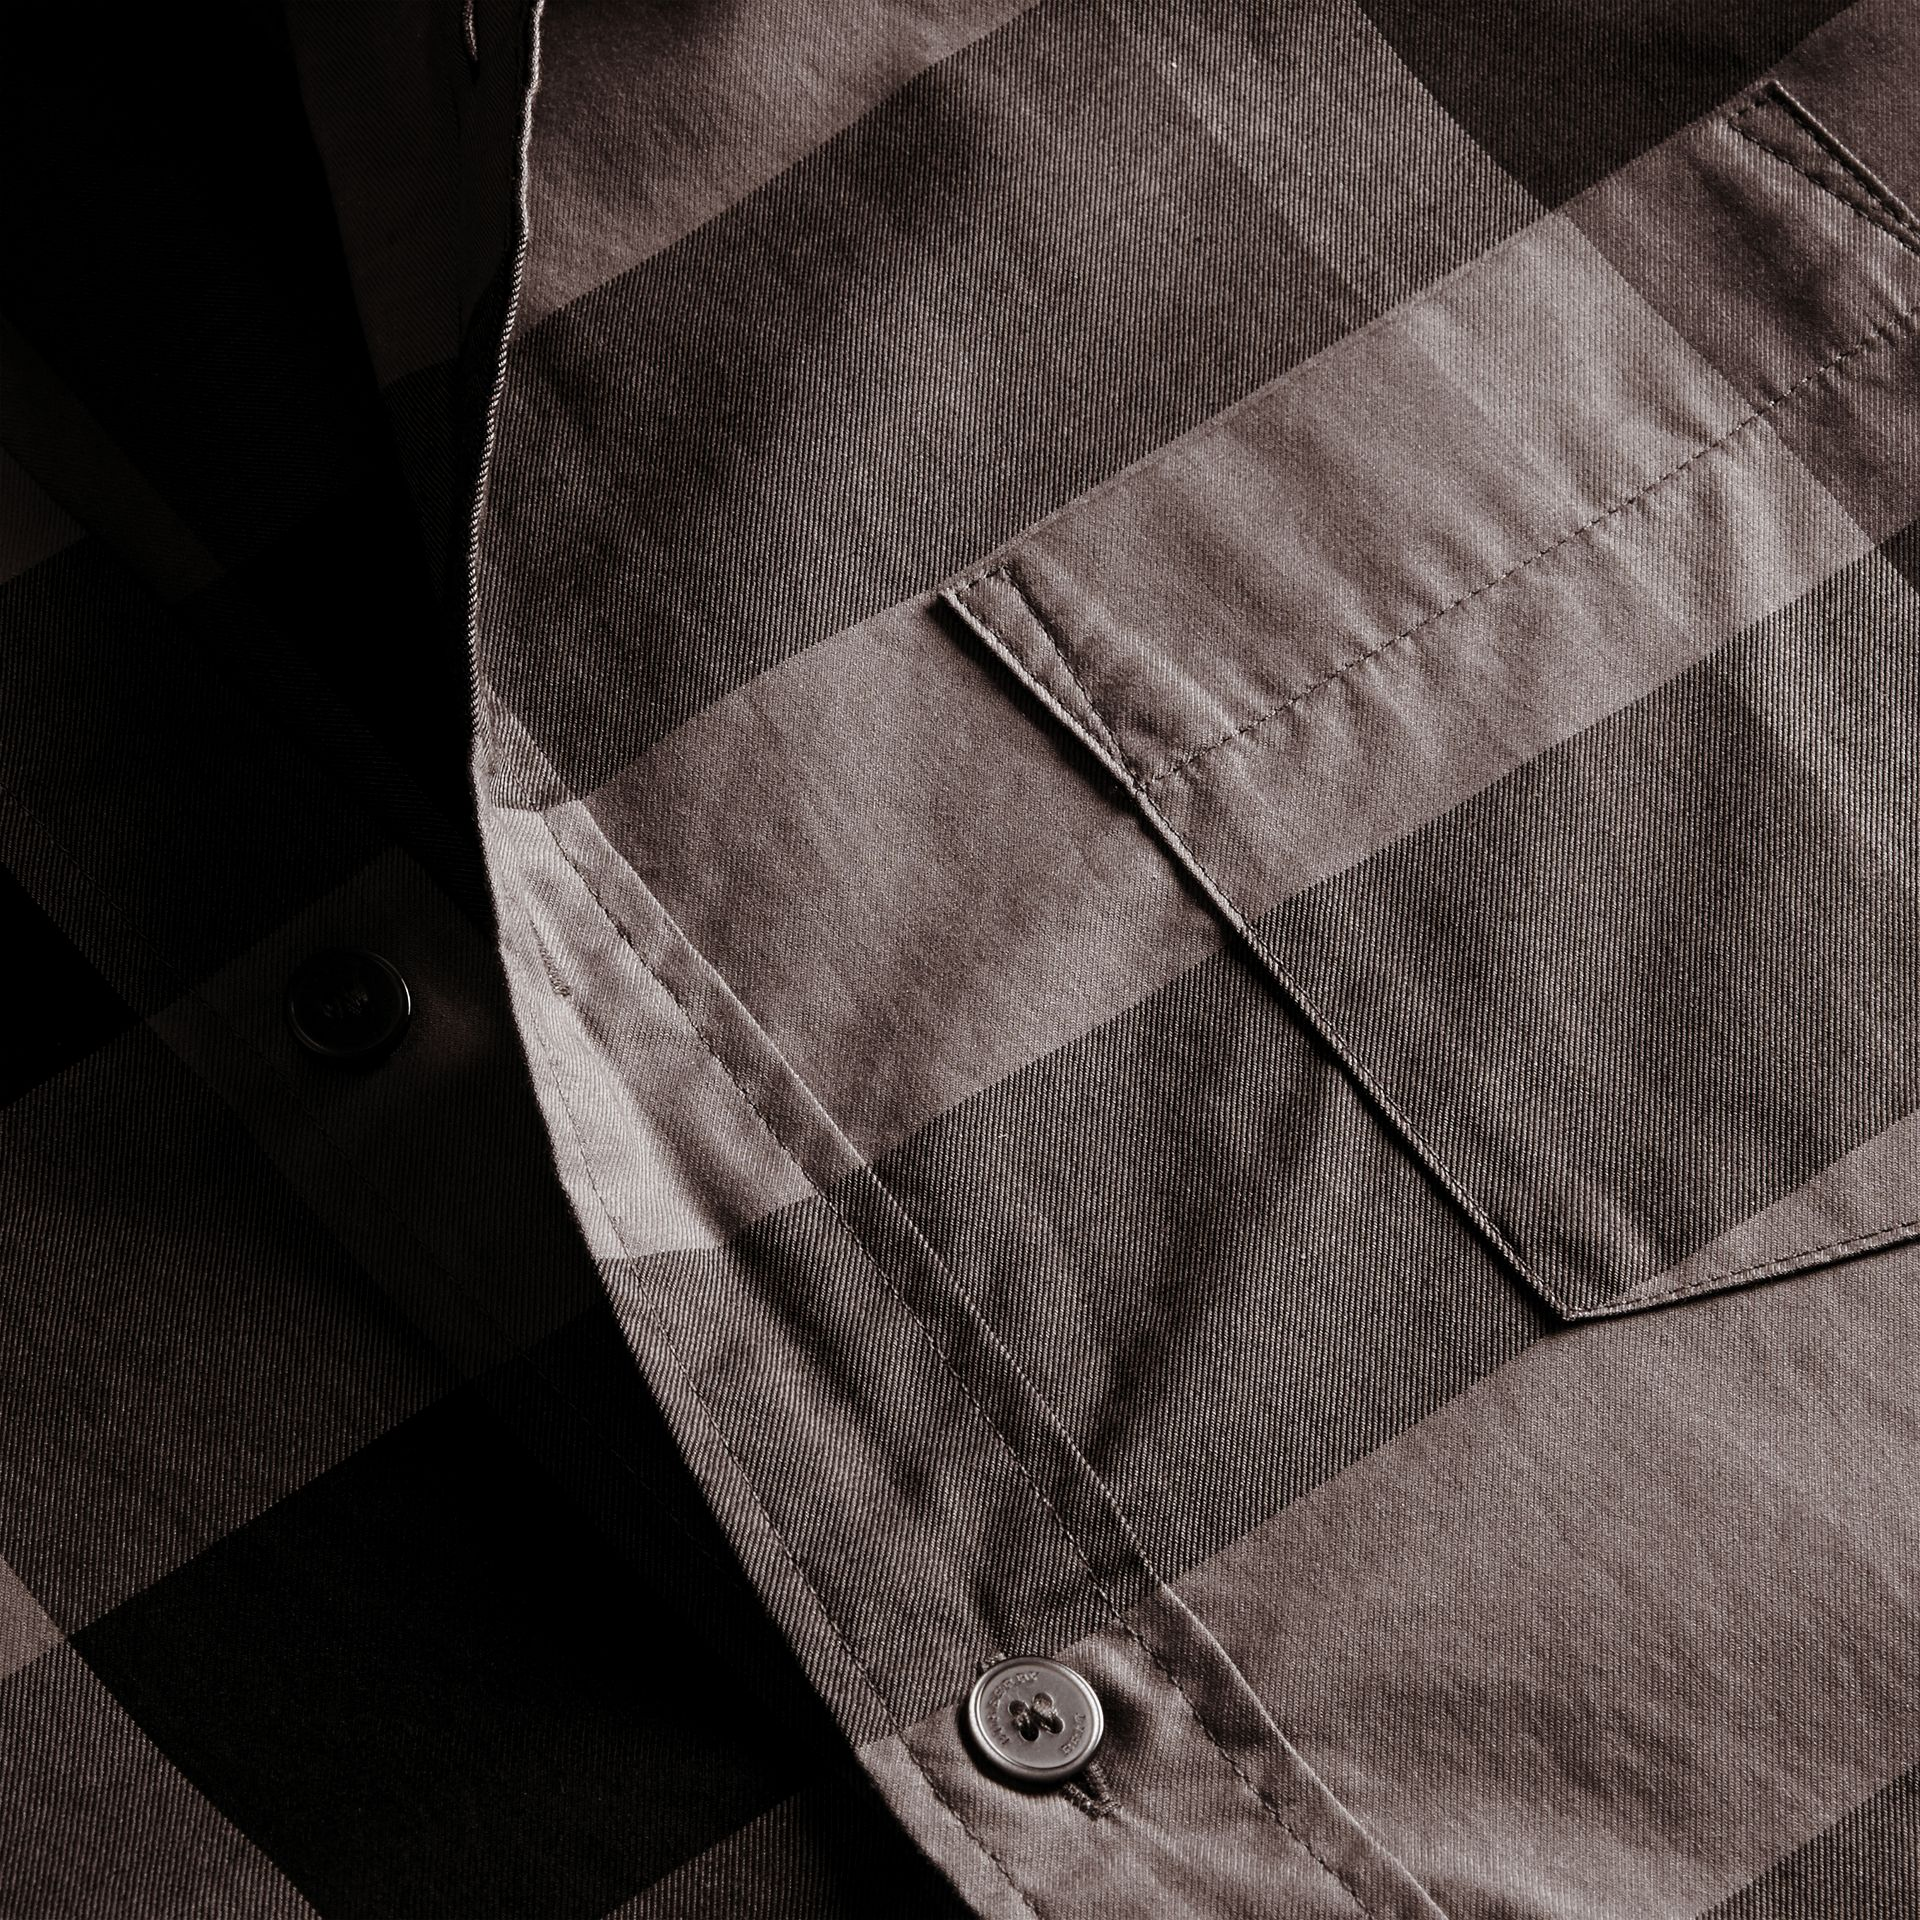 Charcoal Check Cotton Shirt Charcoal - gallery image 2